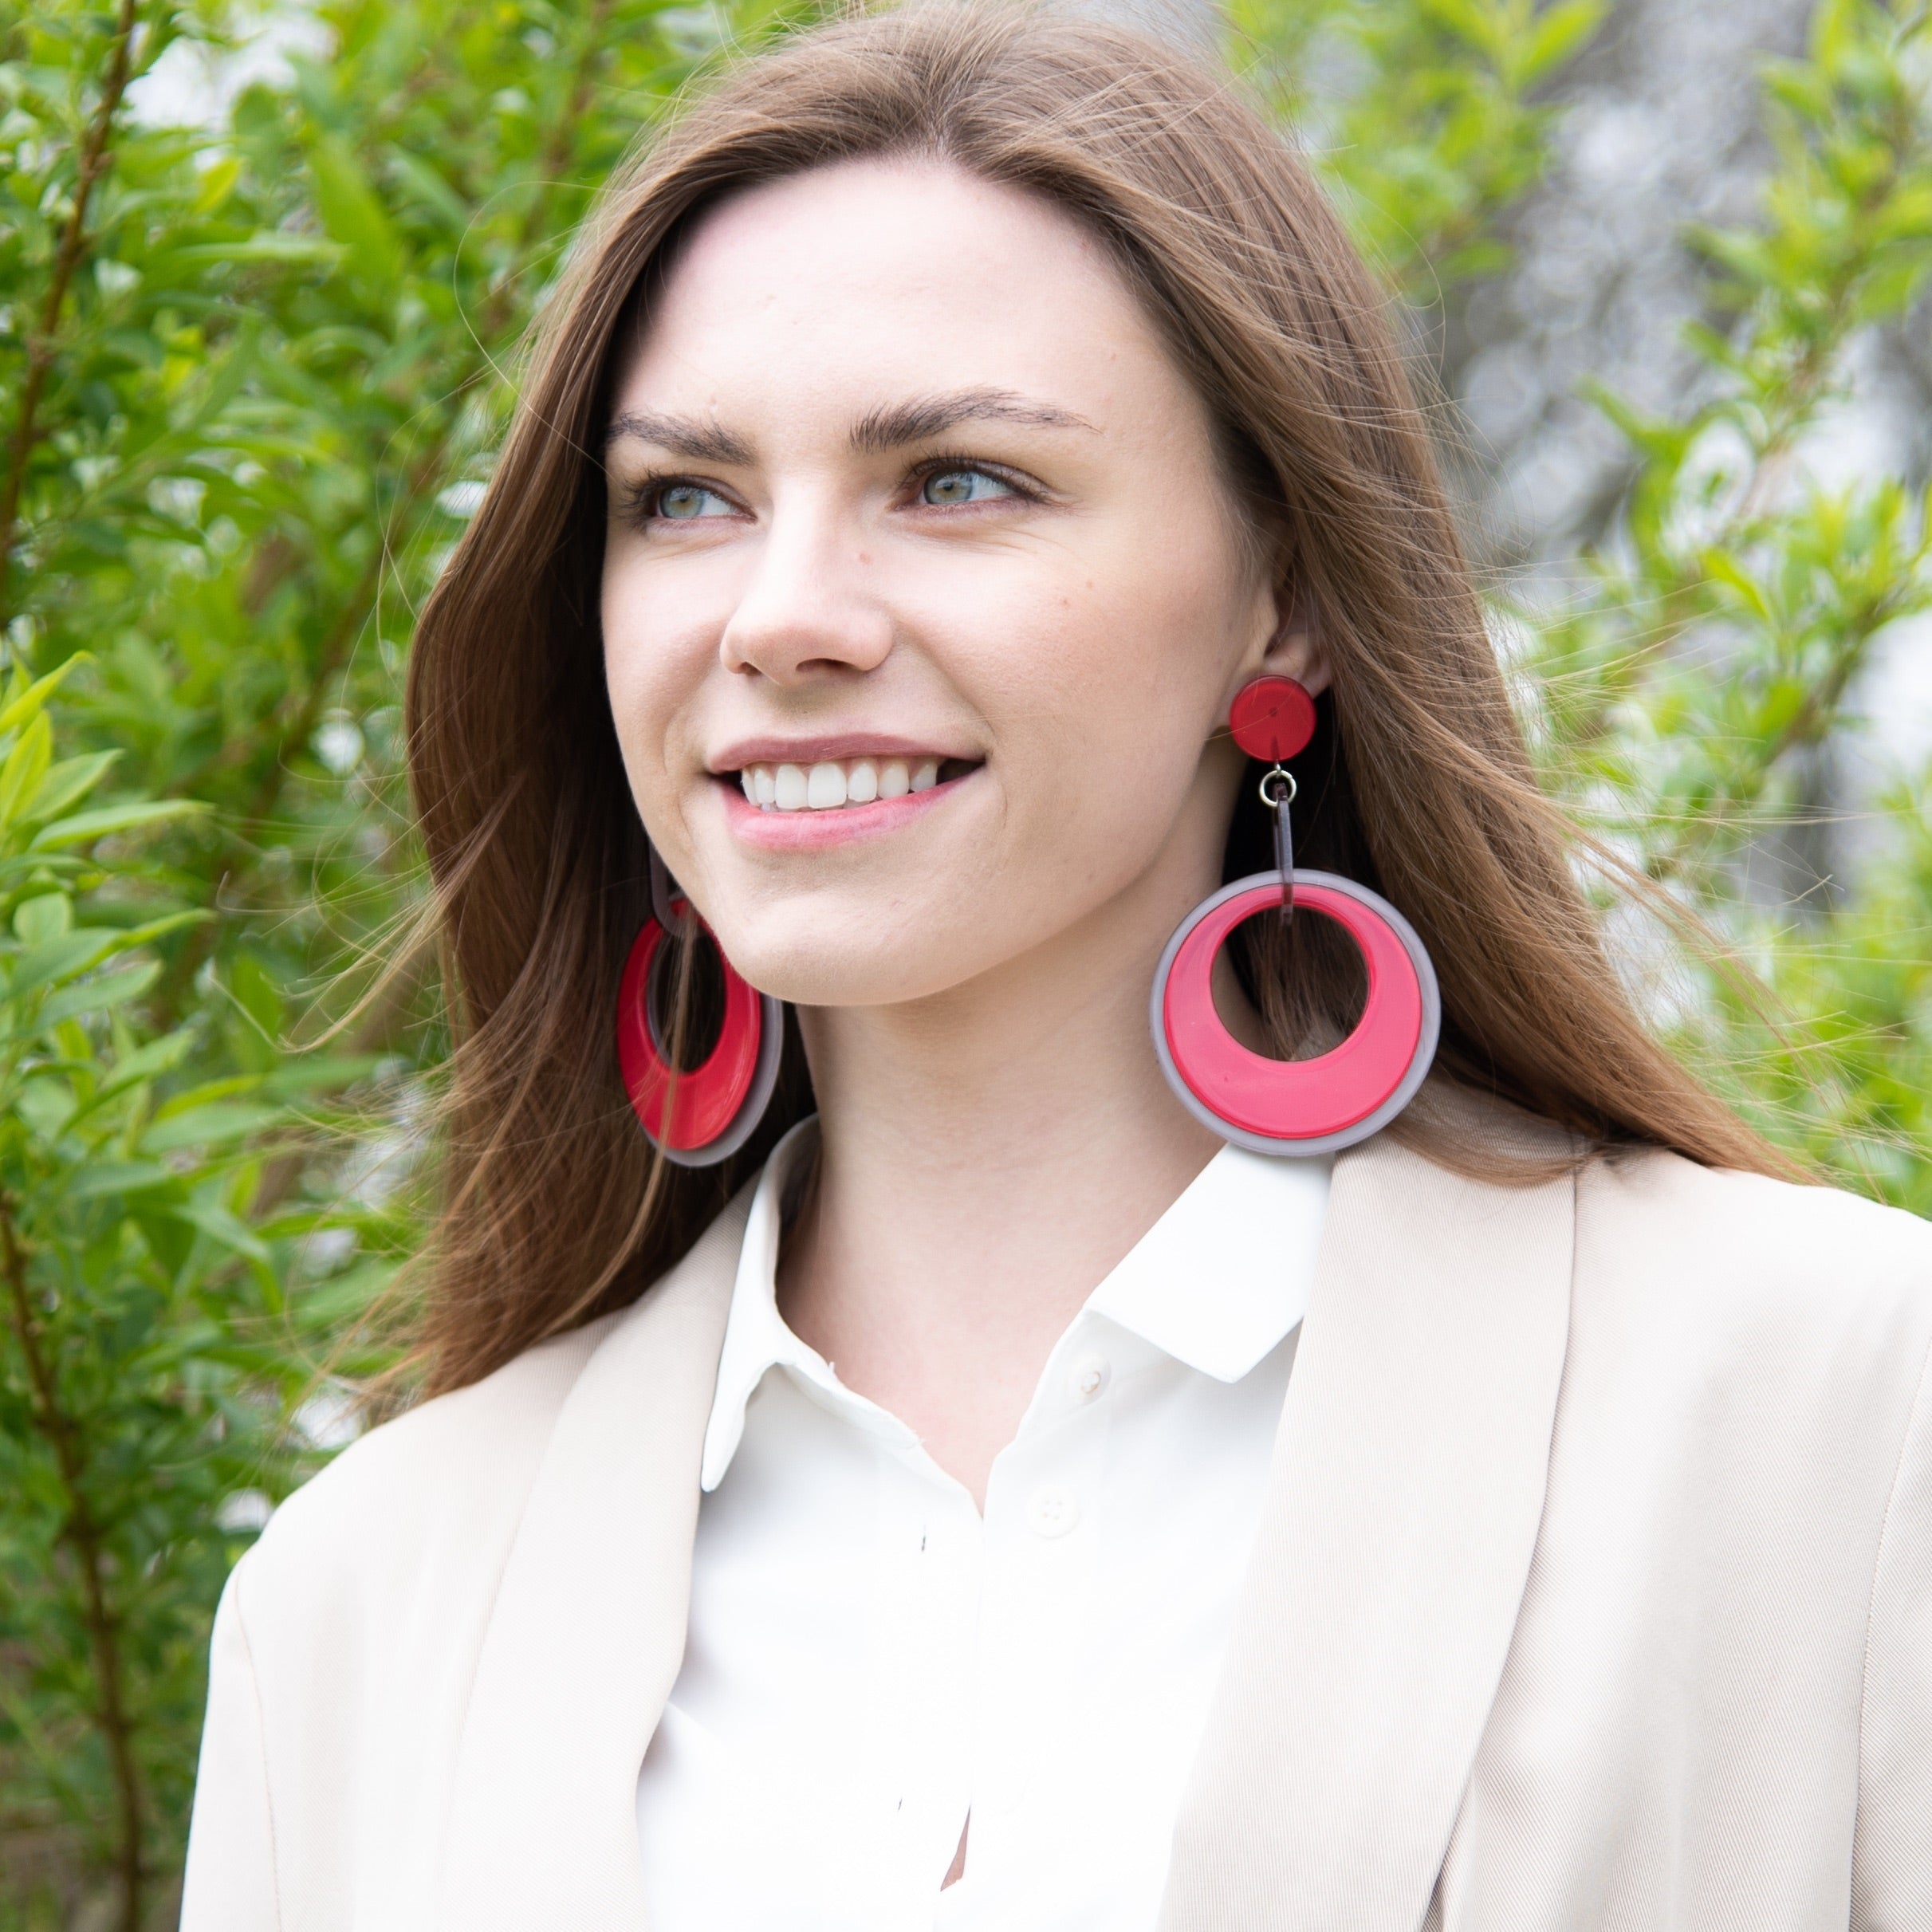 Cherries Red Fashion Statement Earrings